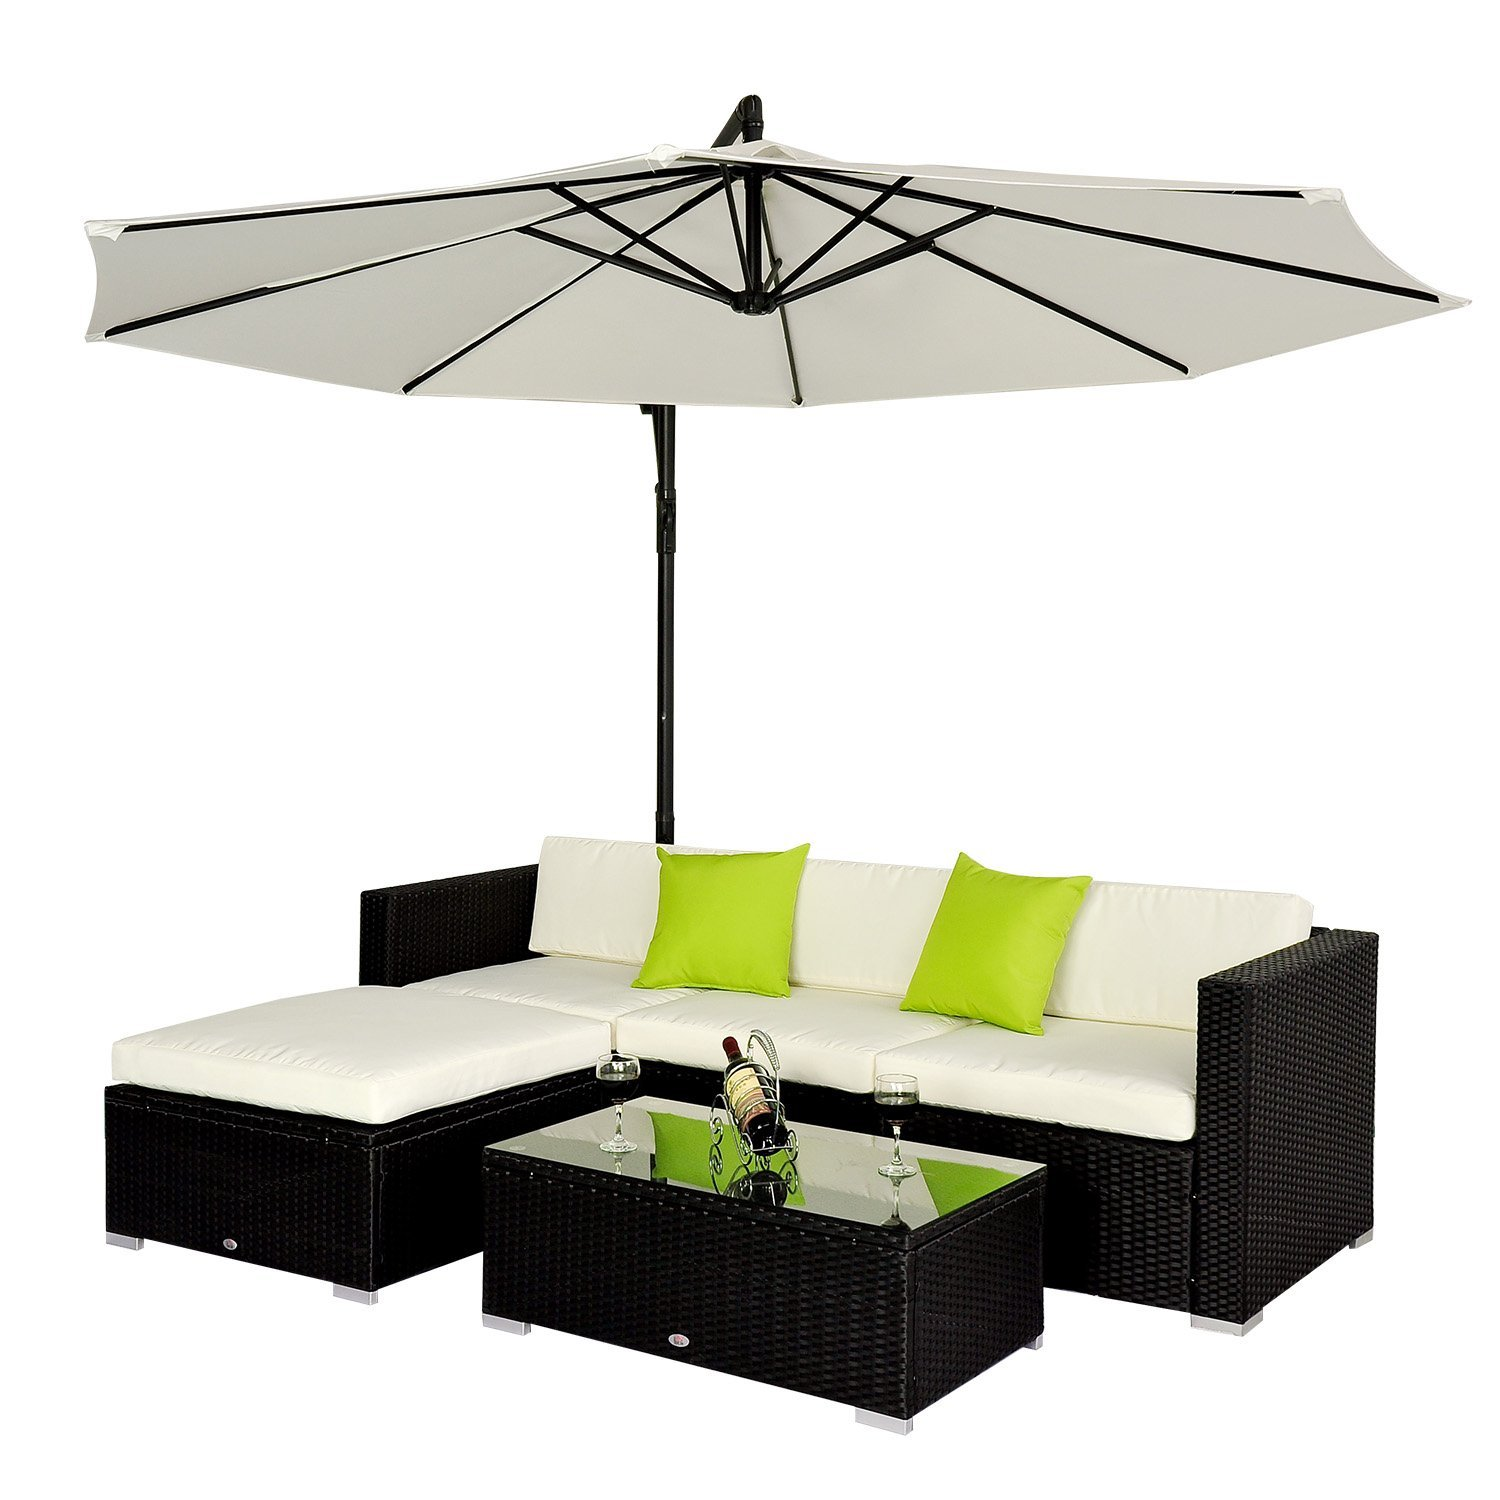 outsunny 5pc rattan wicker conservatory furniture garden corner sofa outdoor patio furniture set black parasol not included amazoncouk garden